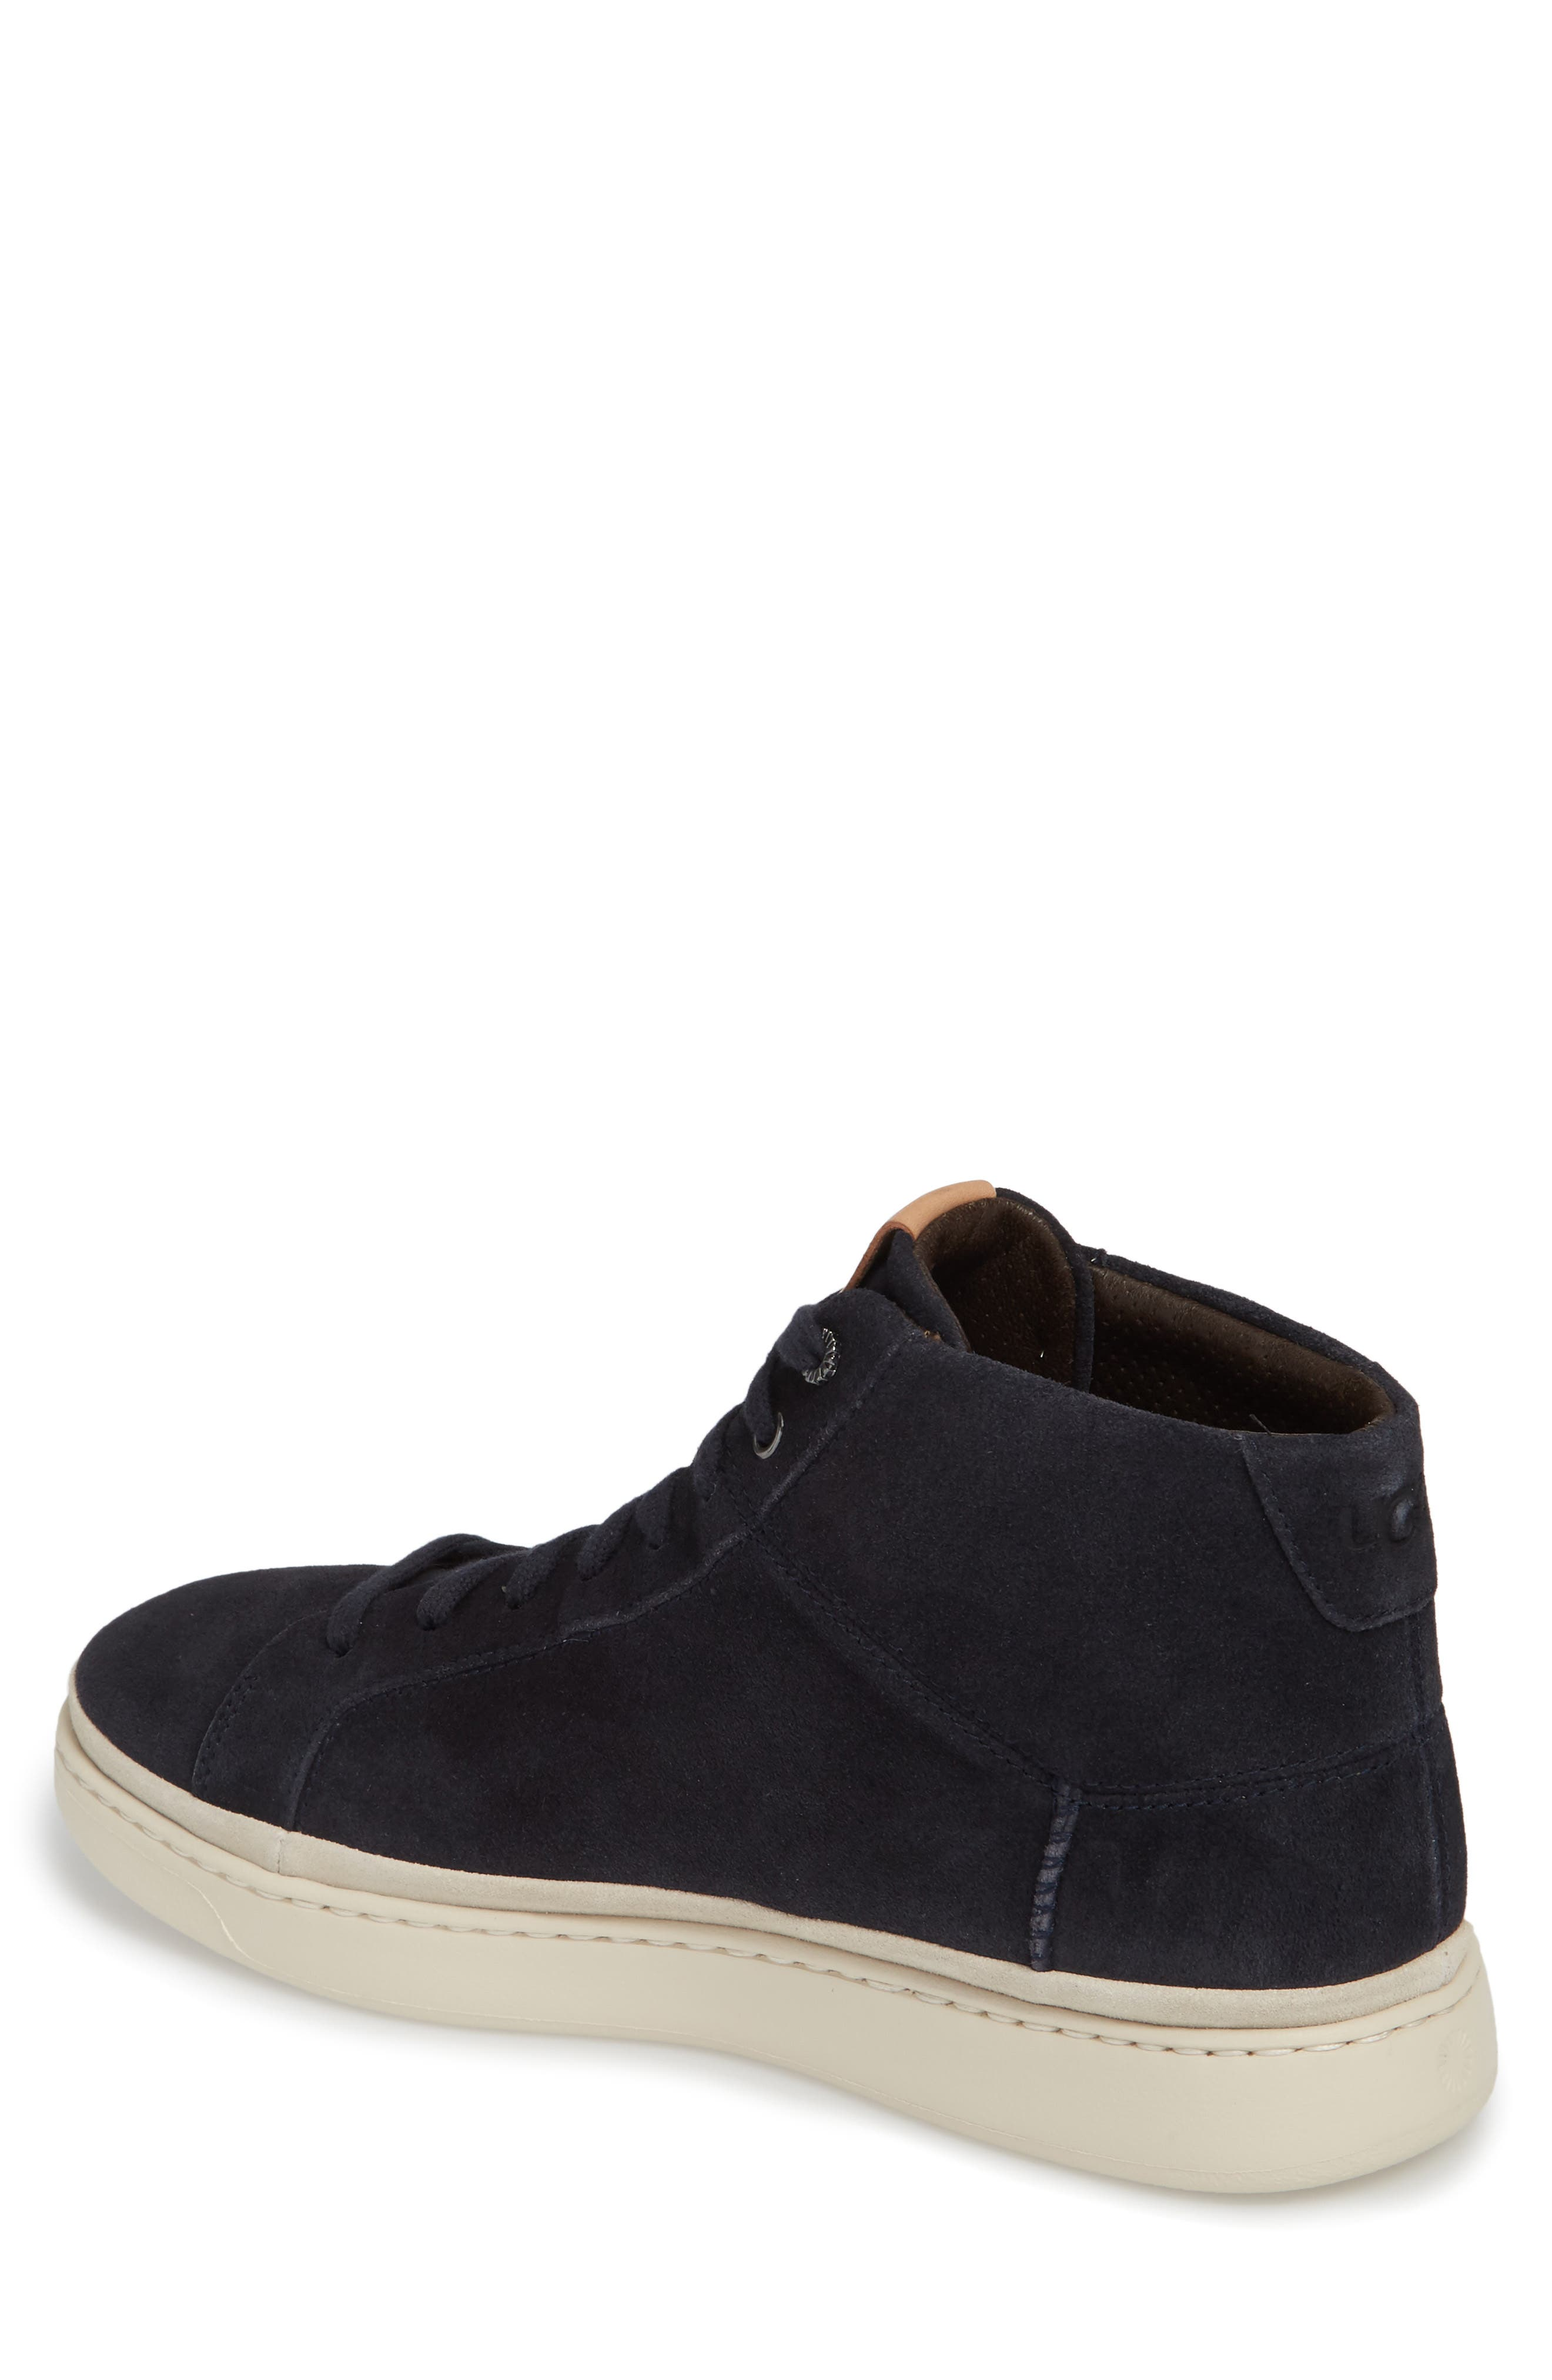 Cali High Top Sneaker,                             Alternate thumbnail 2, color,                             NAVY LEATHER